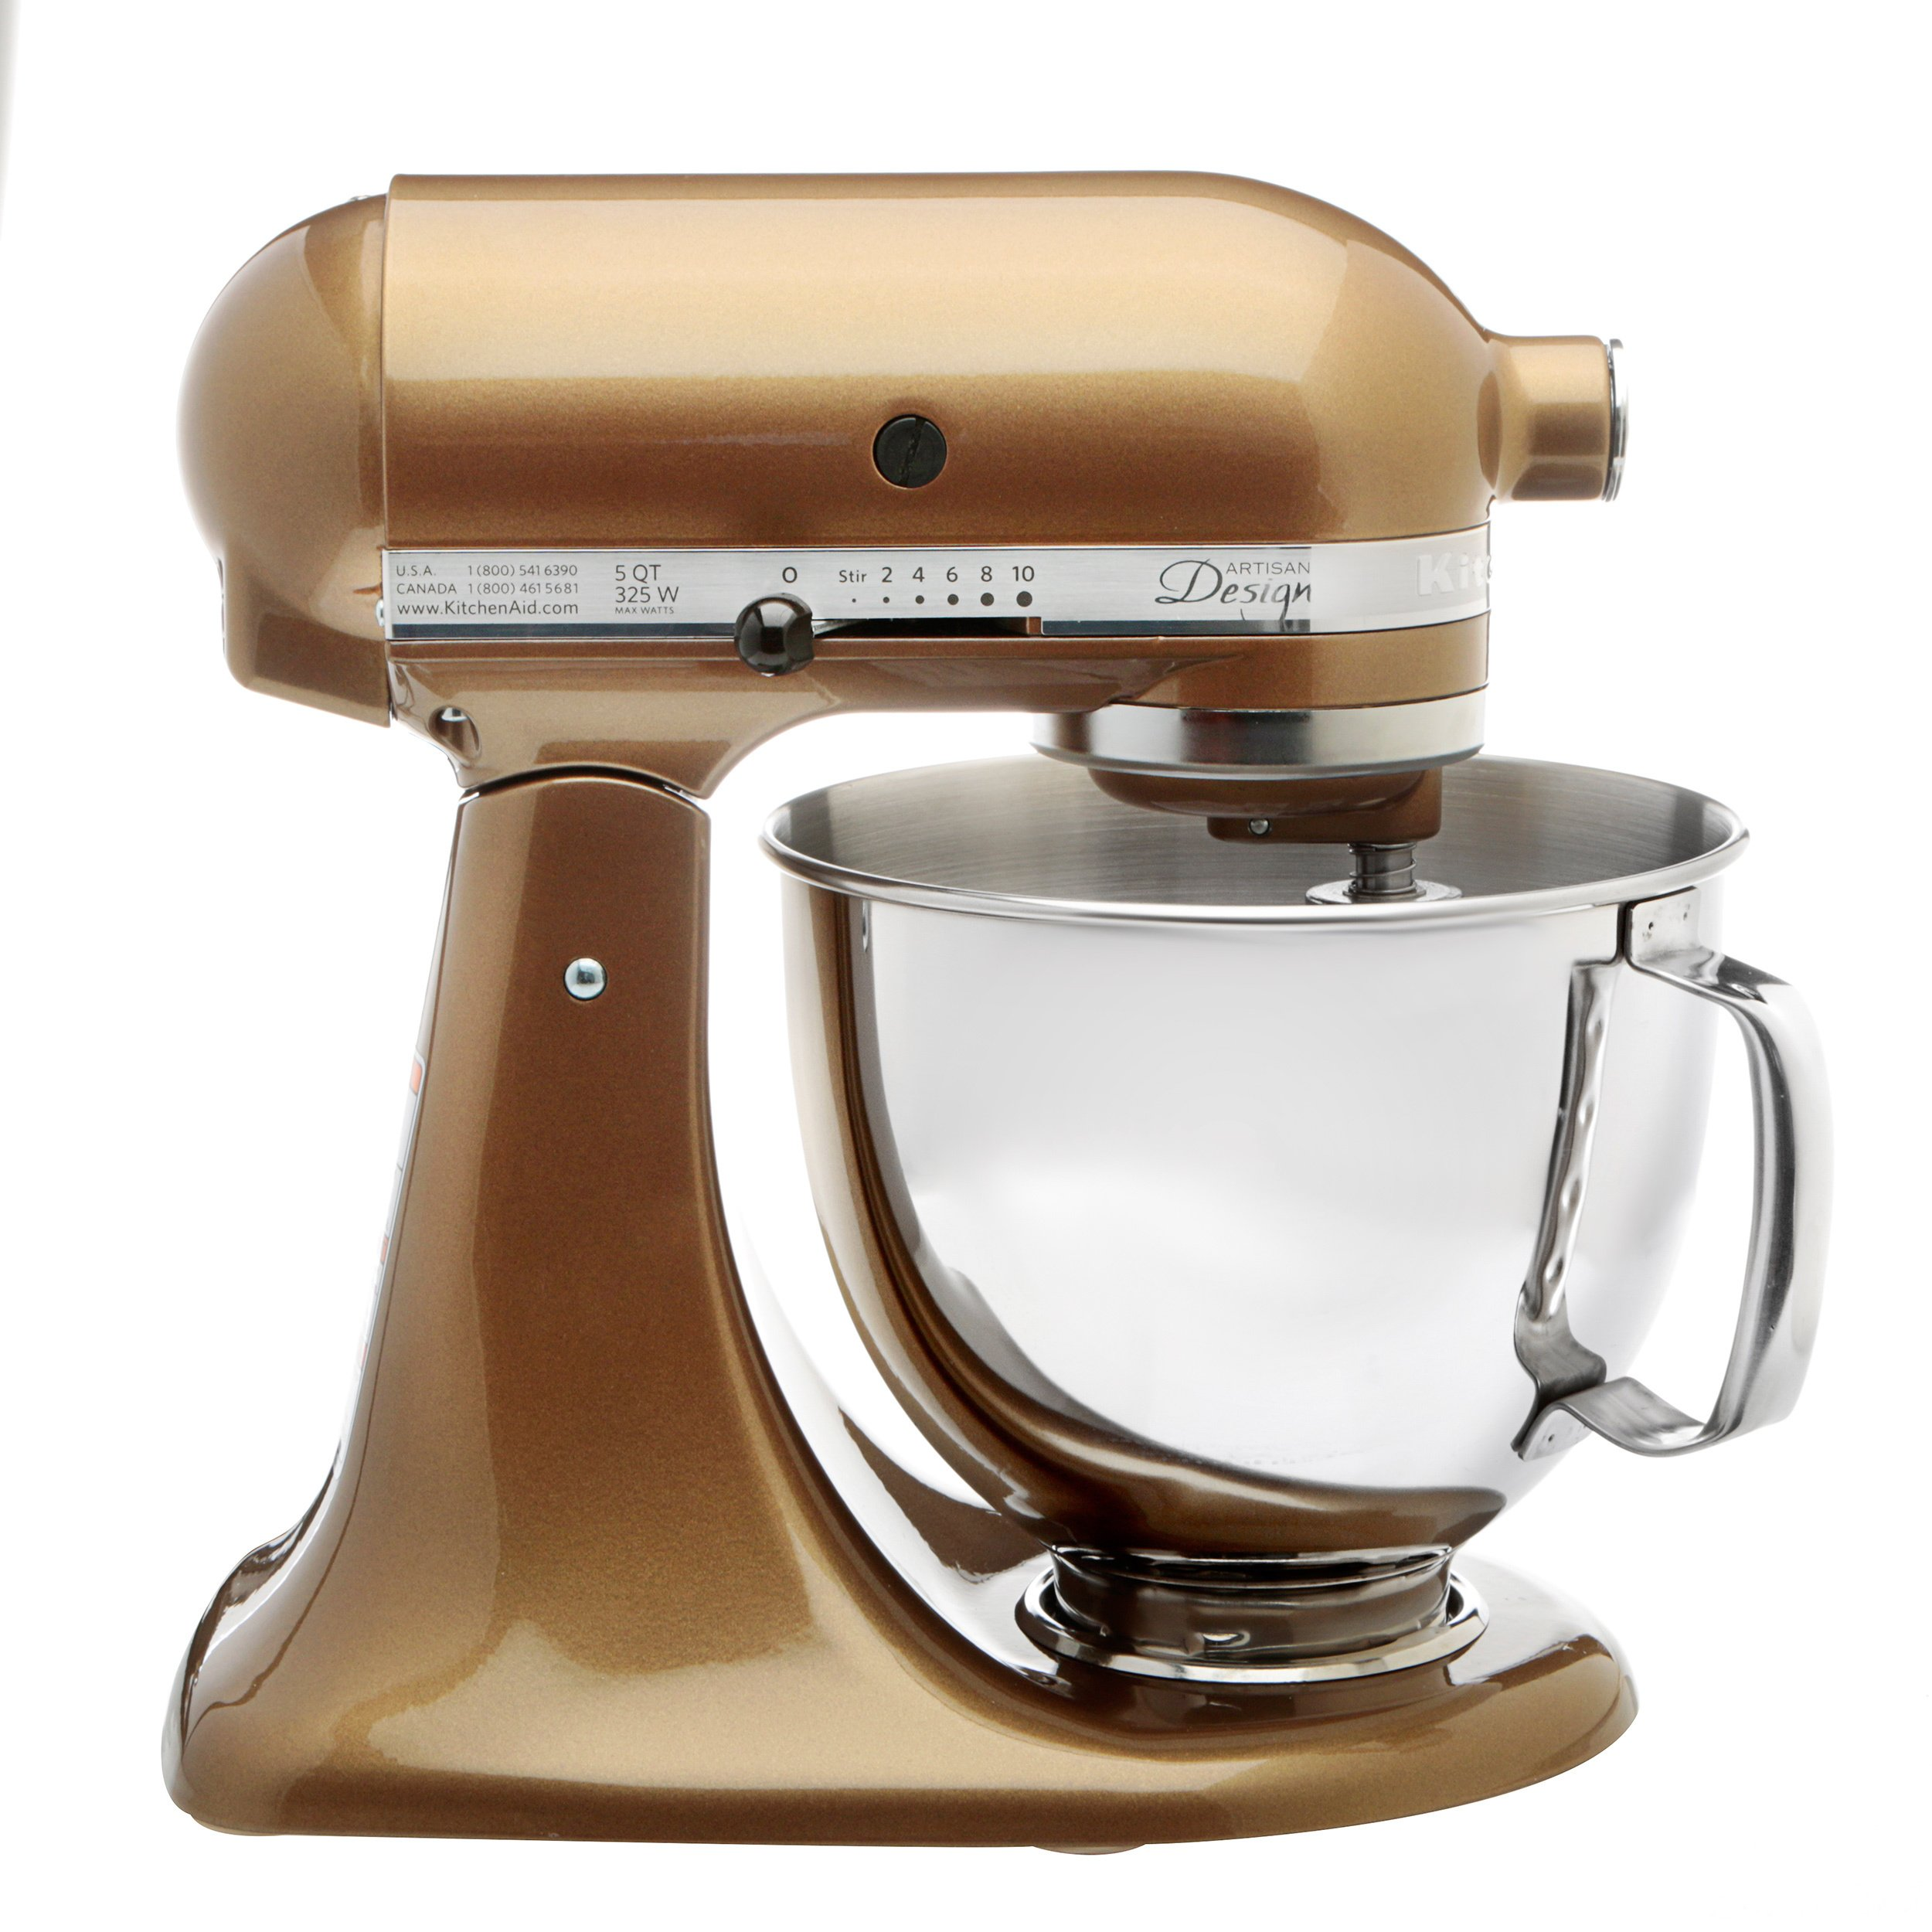 KitchenAid® Refurbished Artisan® Series 5 Quart Tilt-Head Stand Mixer, RRK150 Toffee